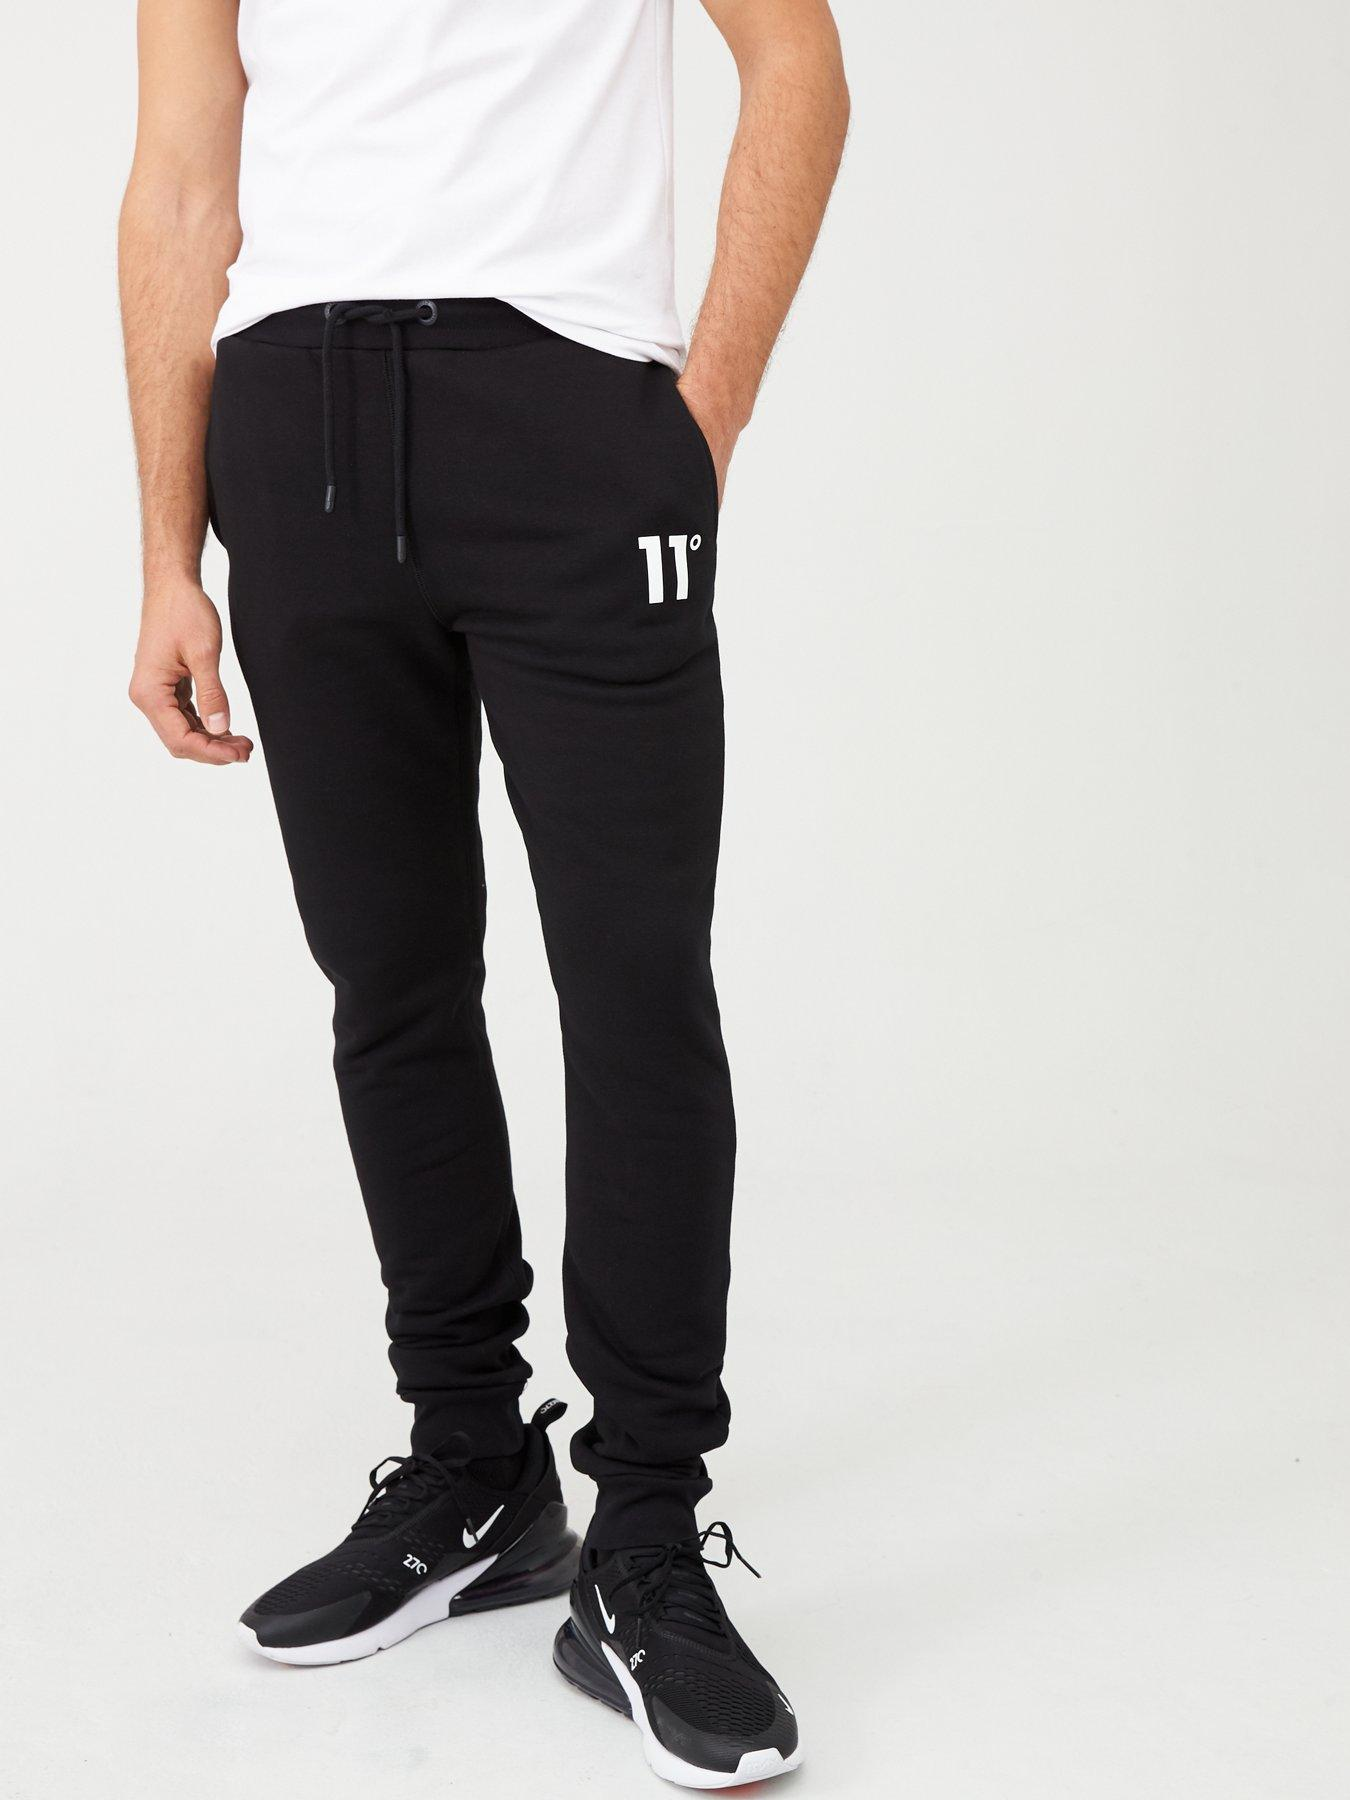 New Mens Rose London King Tracksuit Bottoms Joggers Pants Jogging Gym Casual